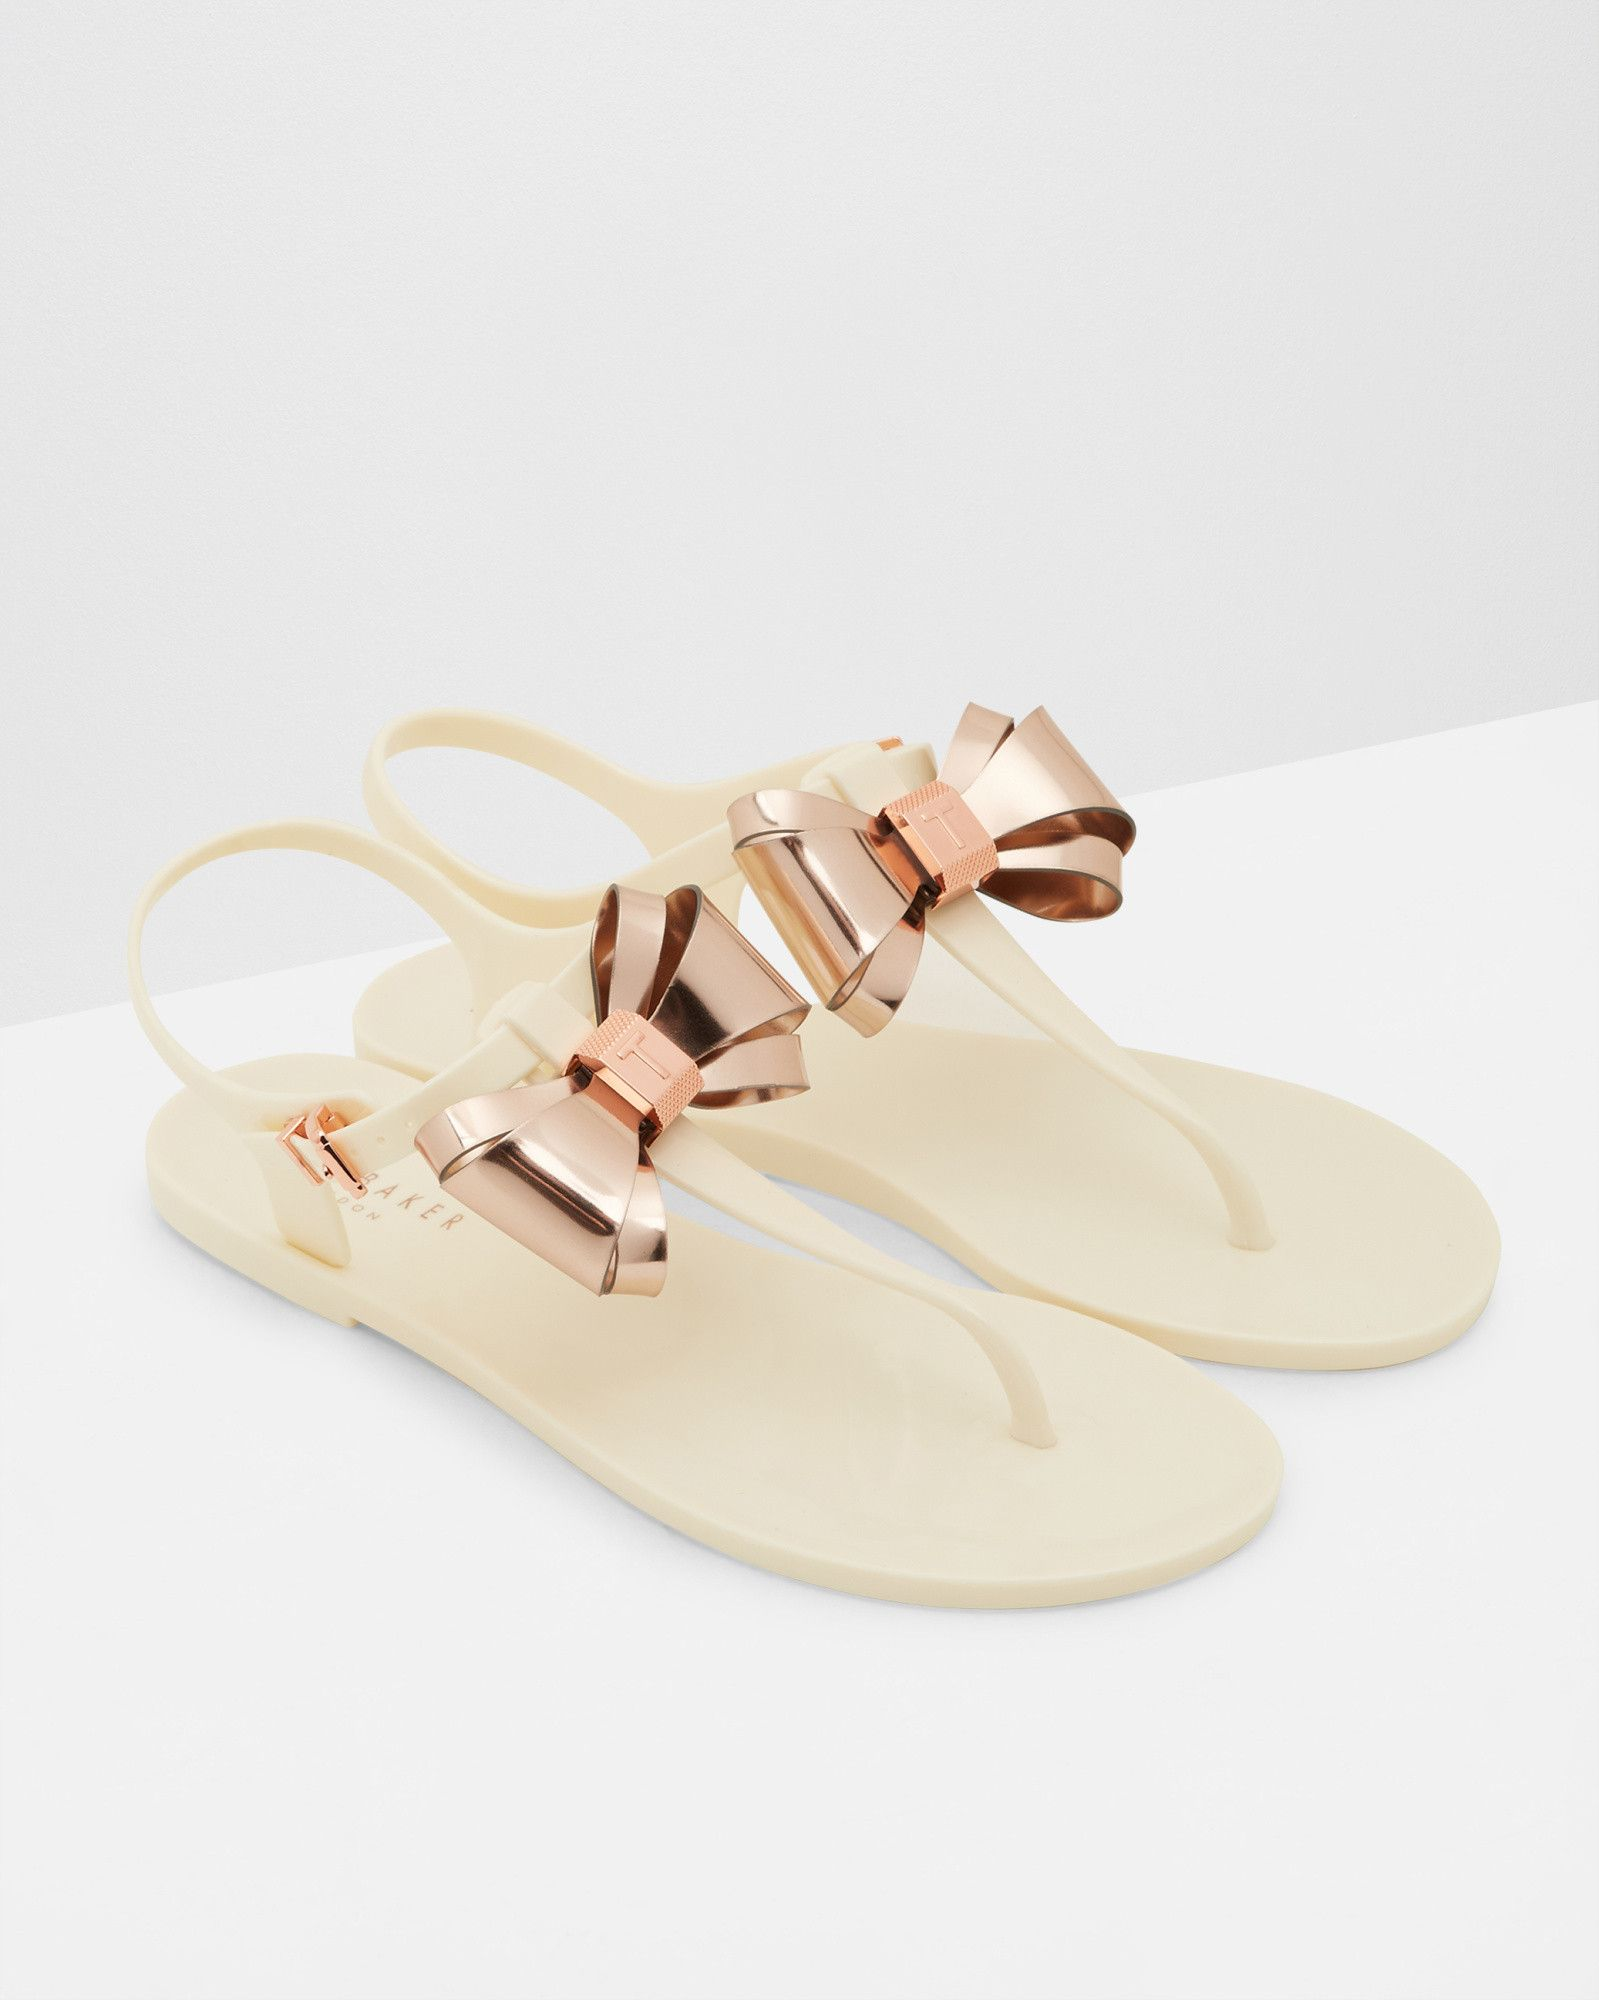 acd9d3faa7c3 Metallic bow jelly sandals - Cream